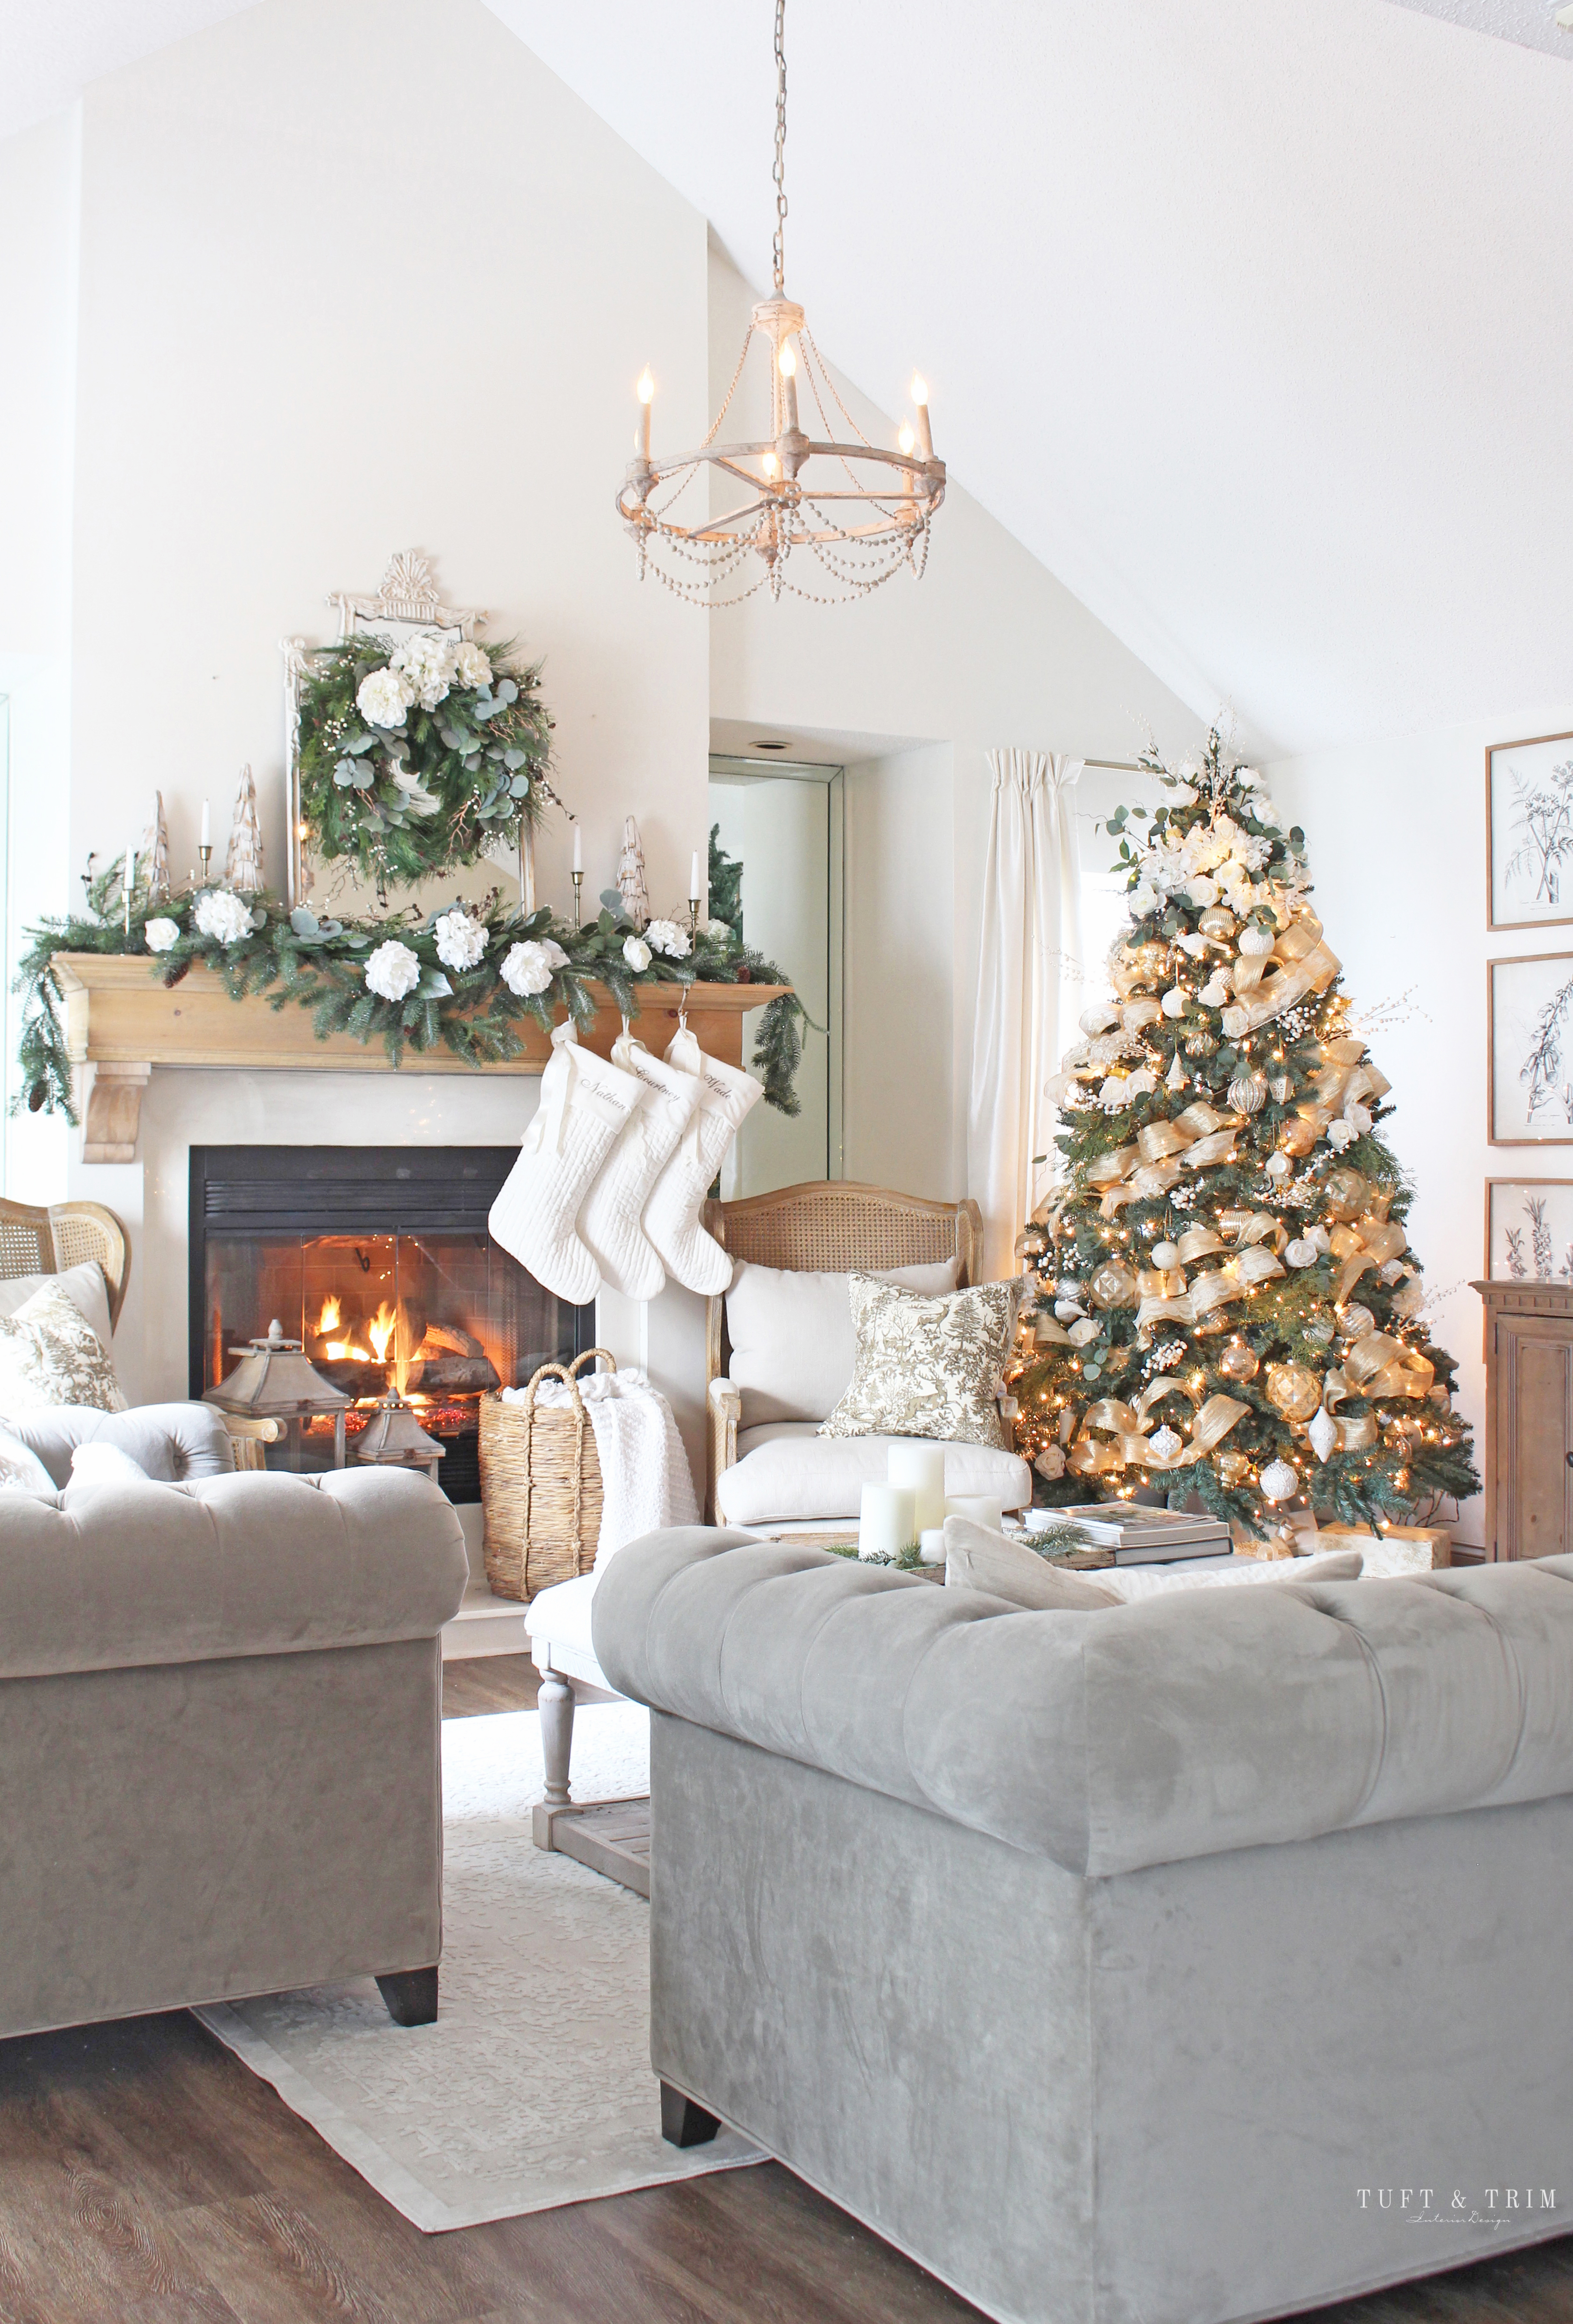 White and Gold Classic Christmas Living Room   Tuft & Trim